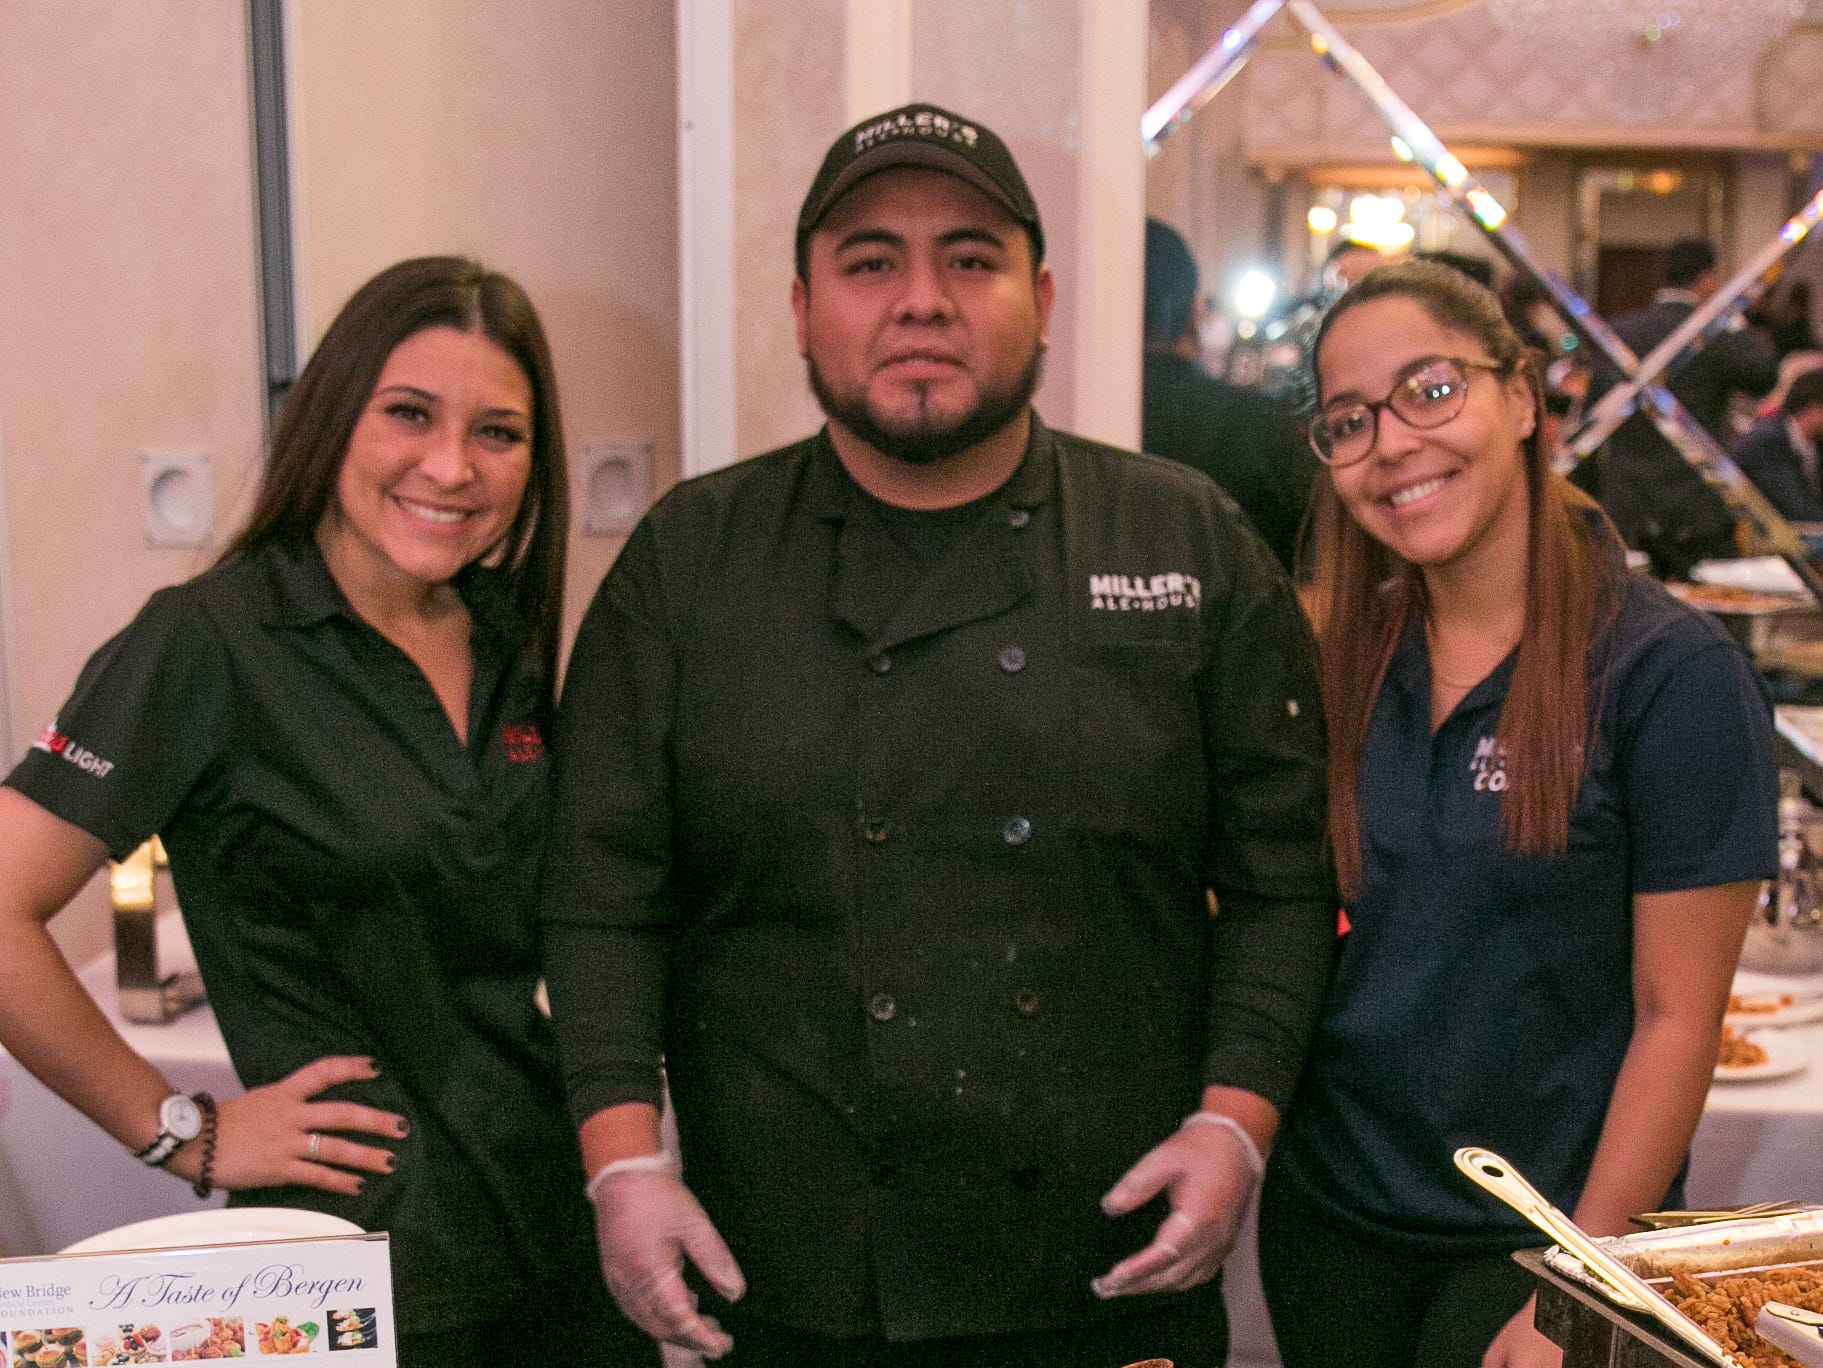 """Christen, Kevin, Eimmy - Miller's Ale House. The New Bridge Medical Center Foundation held its 10th Annual """"A Taste of Bergen"""" at The Venetian in Garfield. The evening featured celebrity chef Chris Holland, the 2017 Grand Champion of the Food Network's """"Chopped."""" 11/12/2018"""